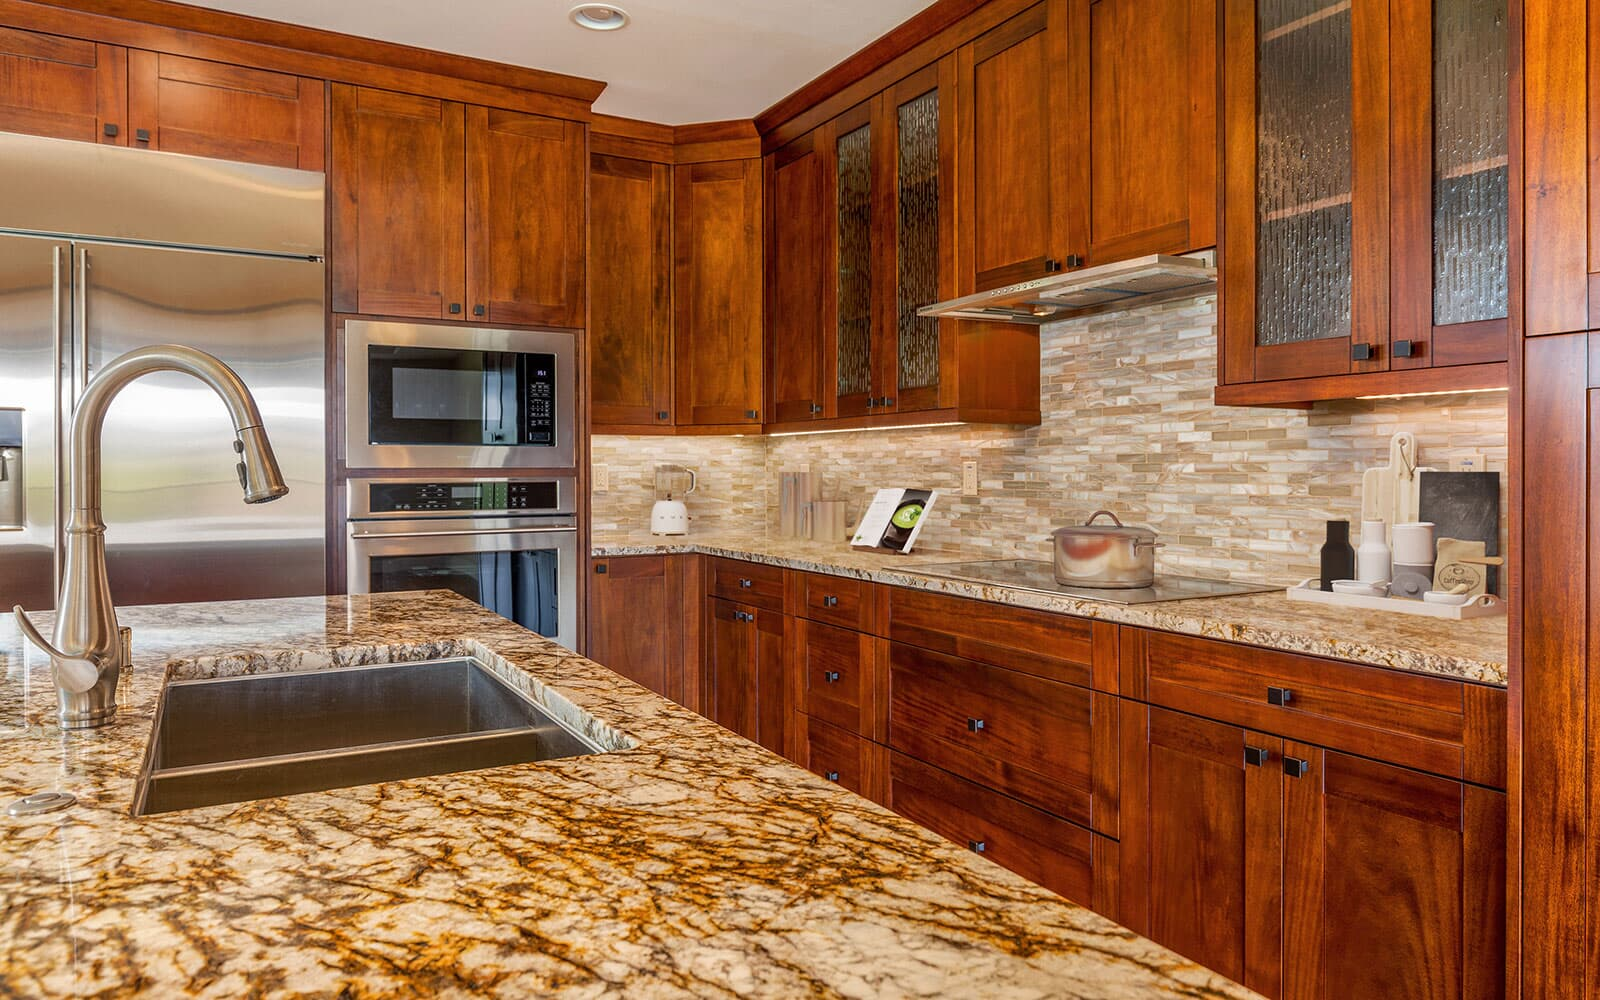 kitchen-new-home-mahina-plan-4-kamilo-at-mauna-lani-big-island-brookfield-residential